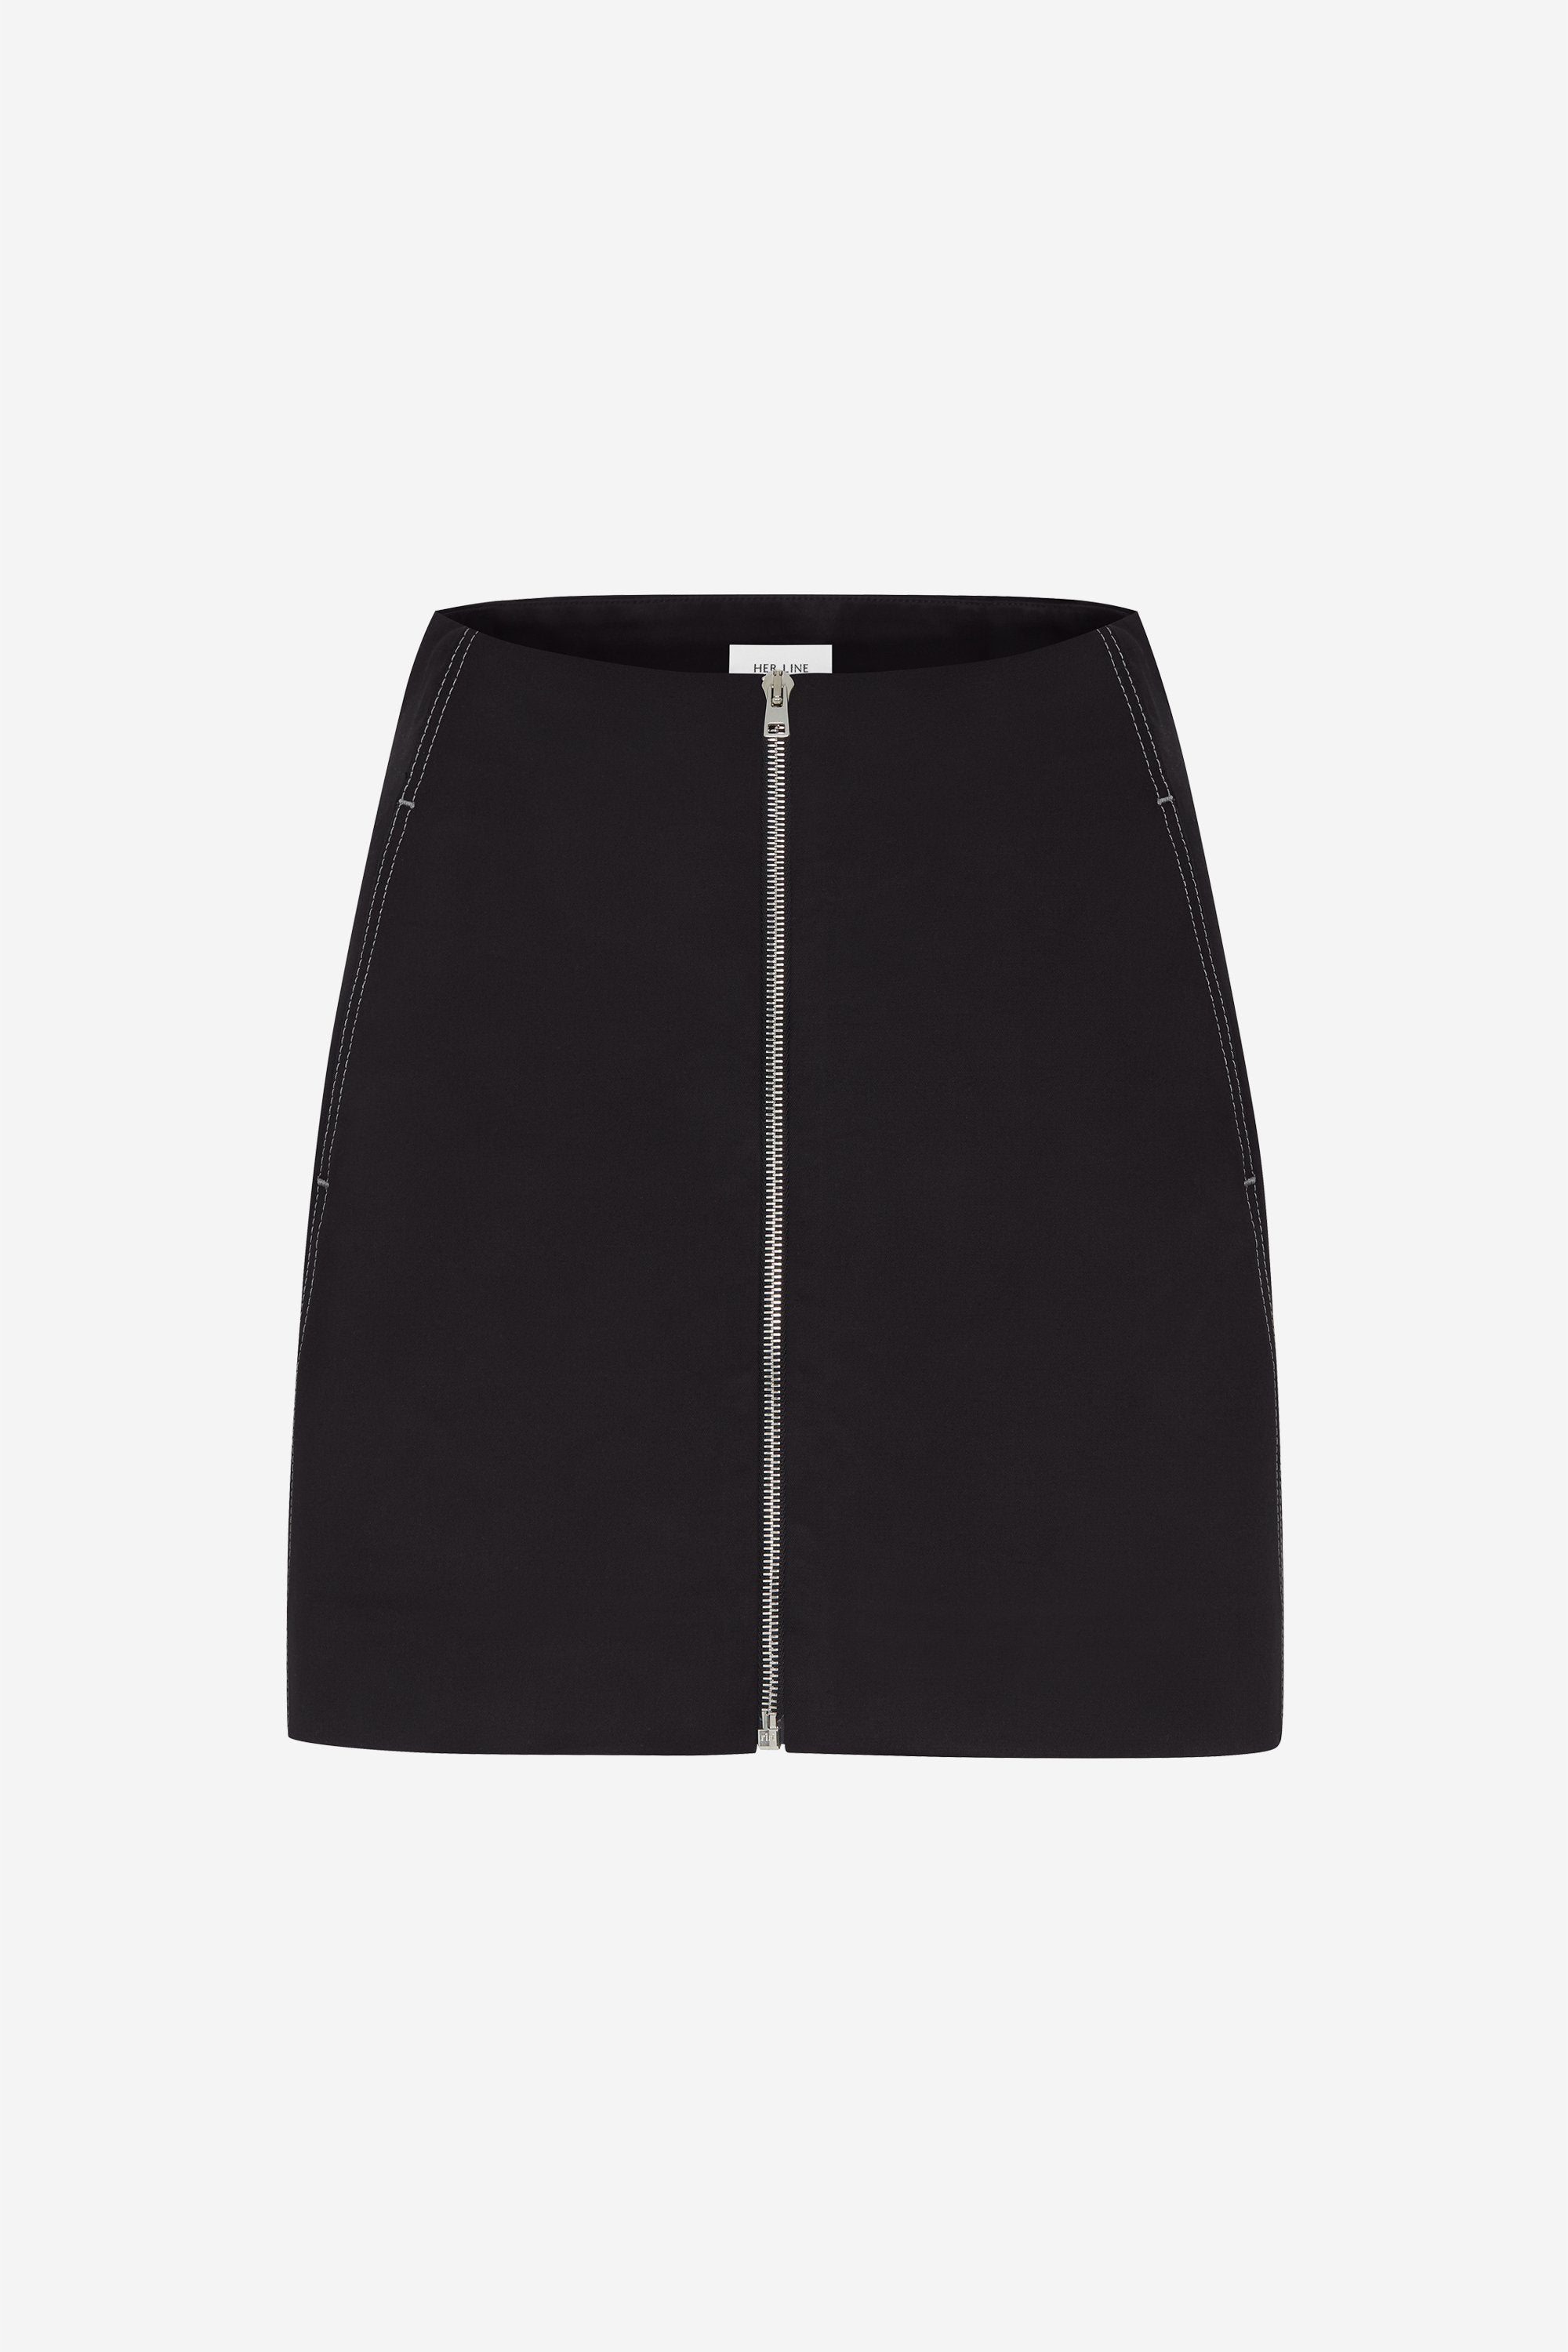 Twin stitch zip mini skirt - Cotton drill - Black - Resortwear skirt - Her Line